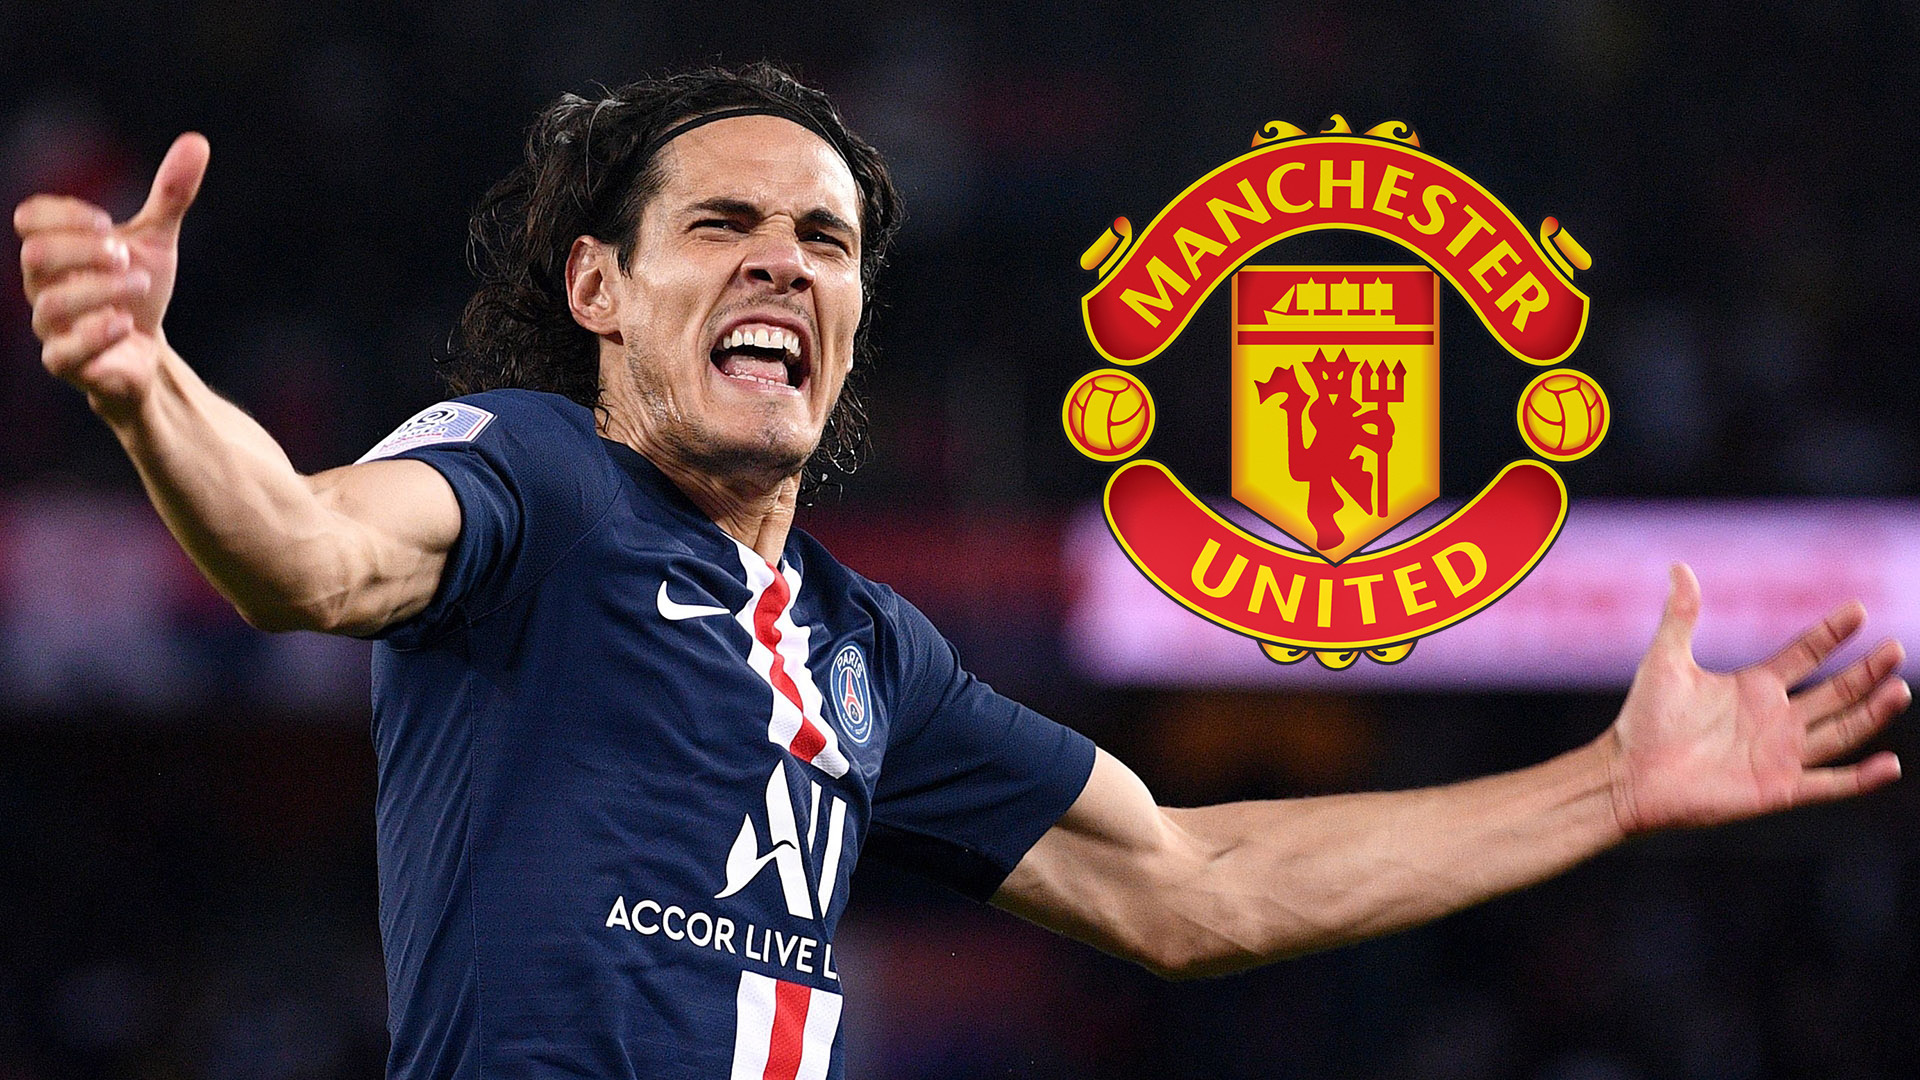 'Cavani could be a slow burner for Manchester United' – Berbatov expects experienced striker to make an impact